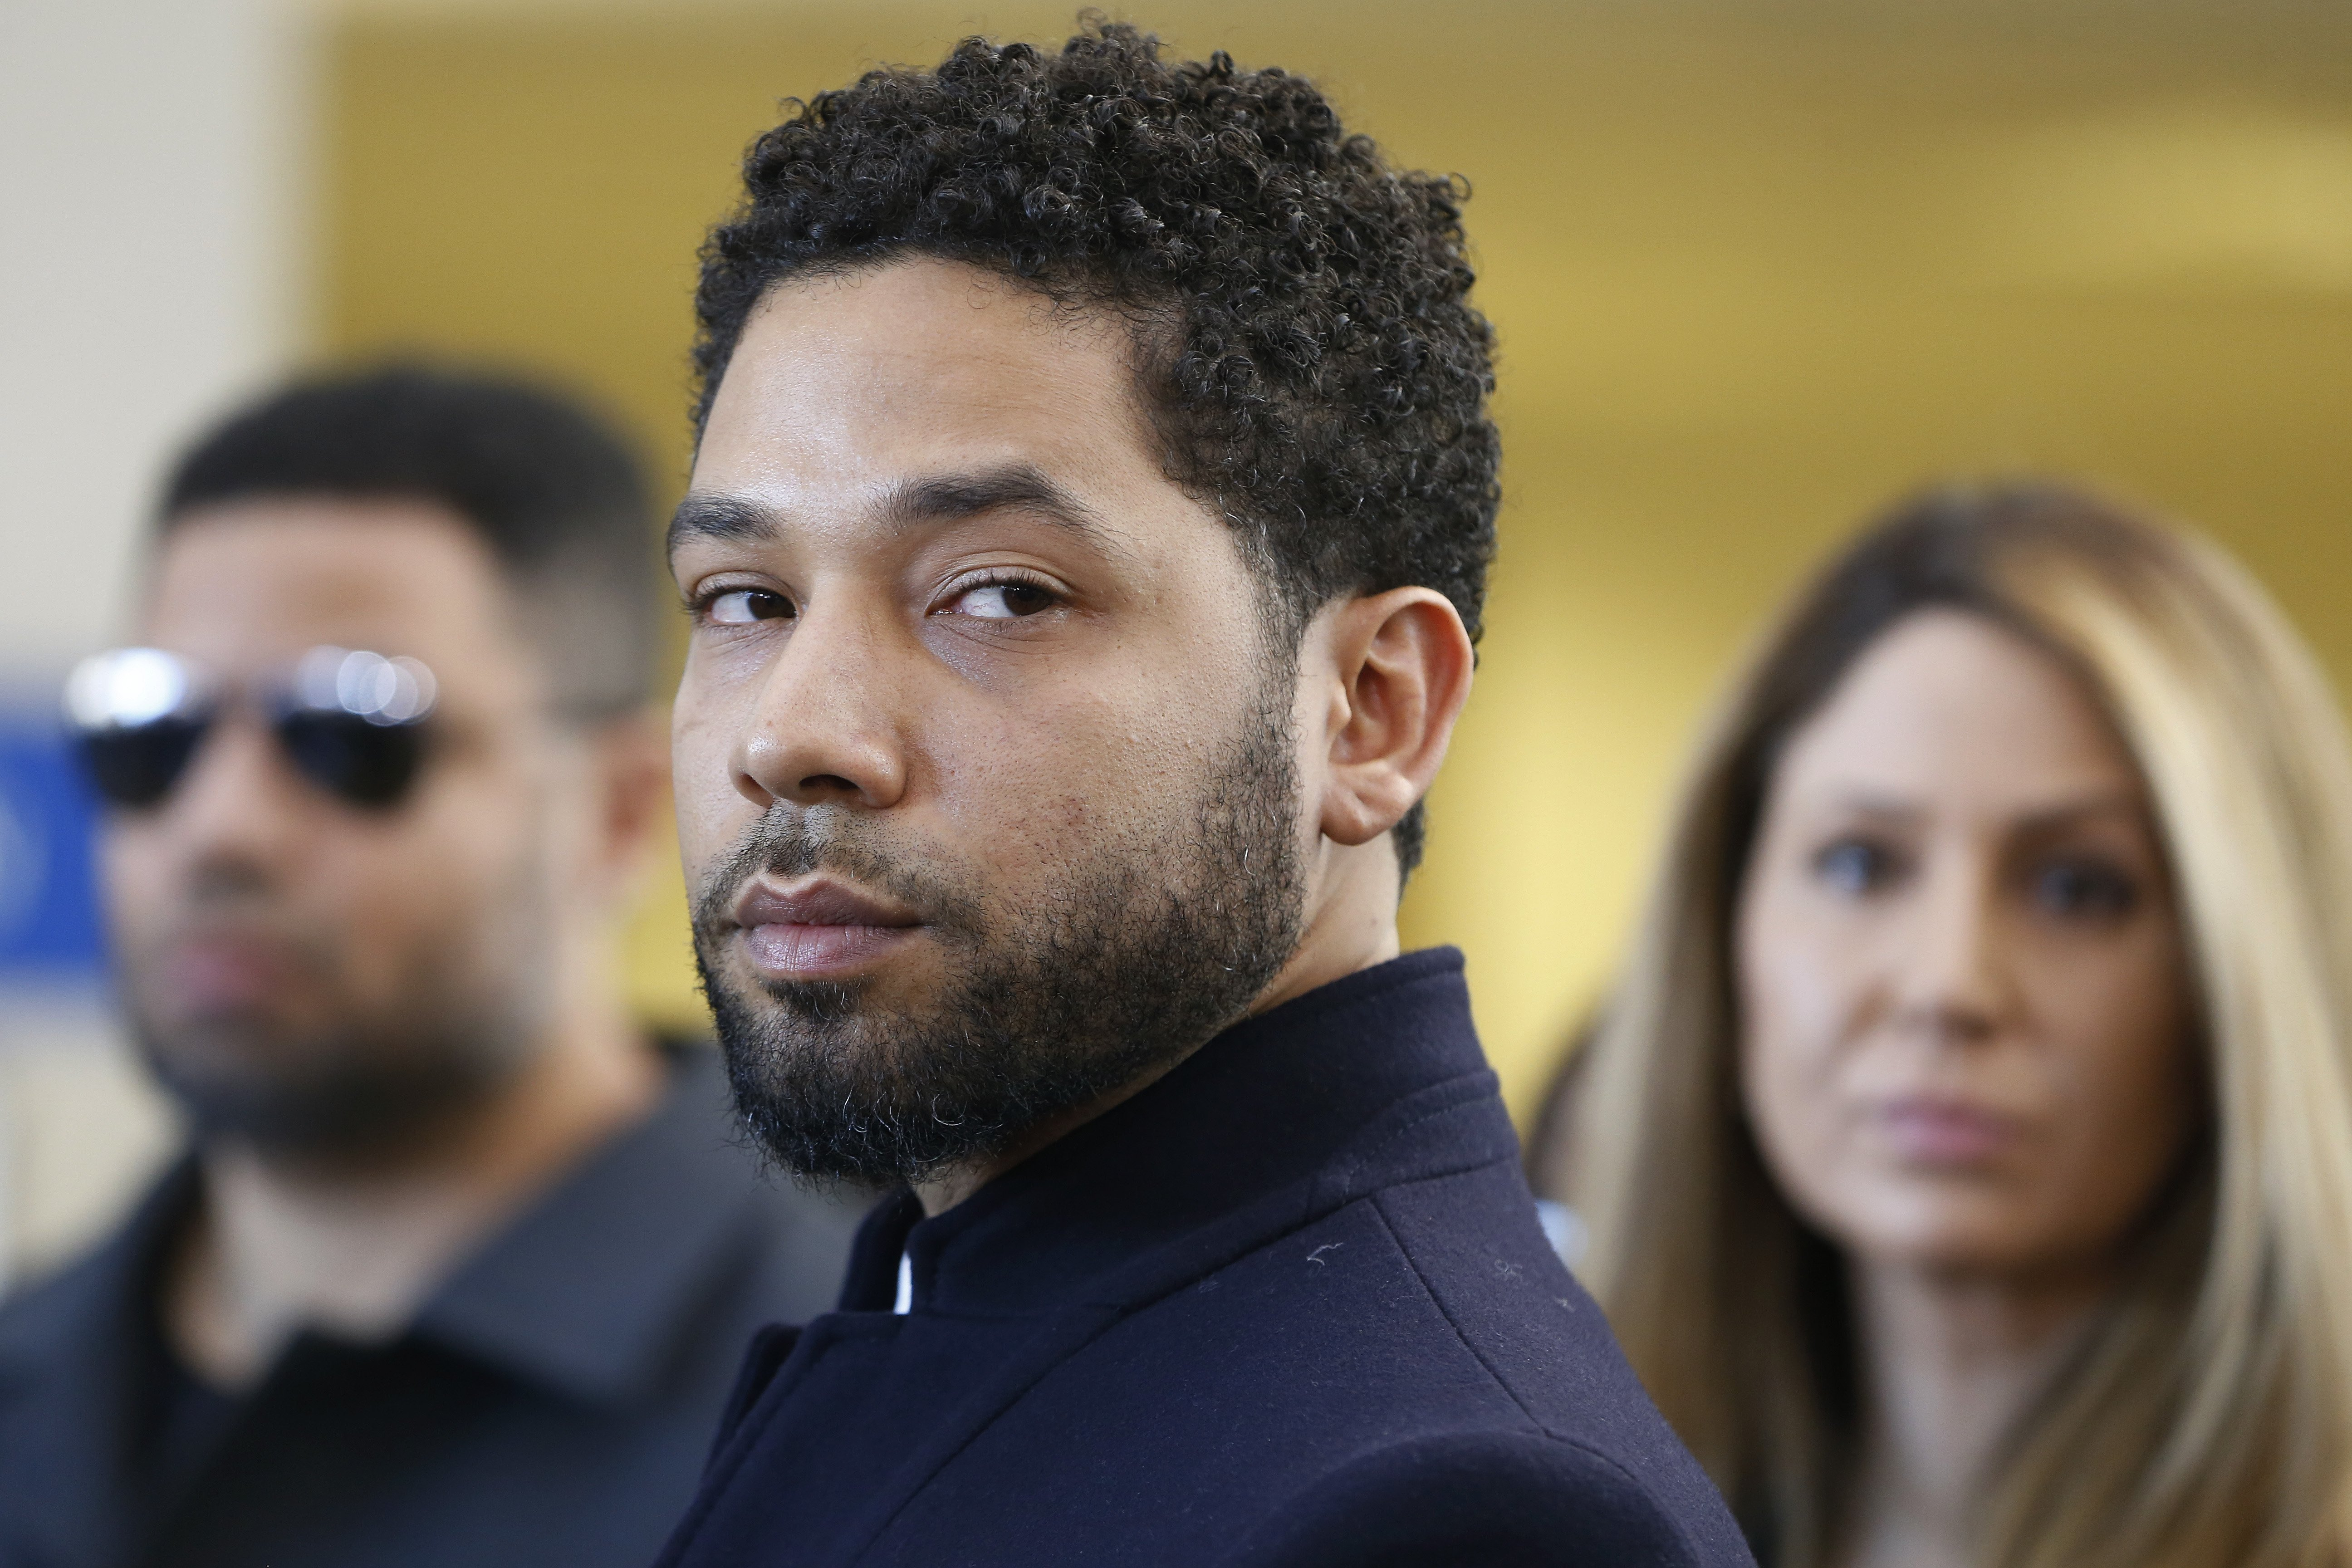 Accused actor Jussie Smollett after his appearance at Leighton Courthouse in March 2019 in Chicago. | Photo: Getty Images